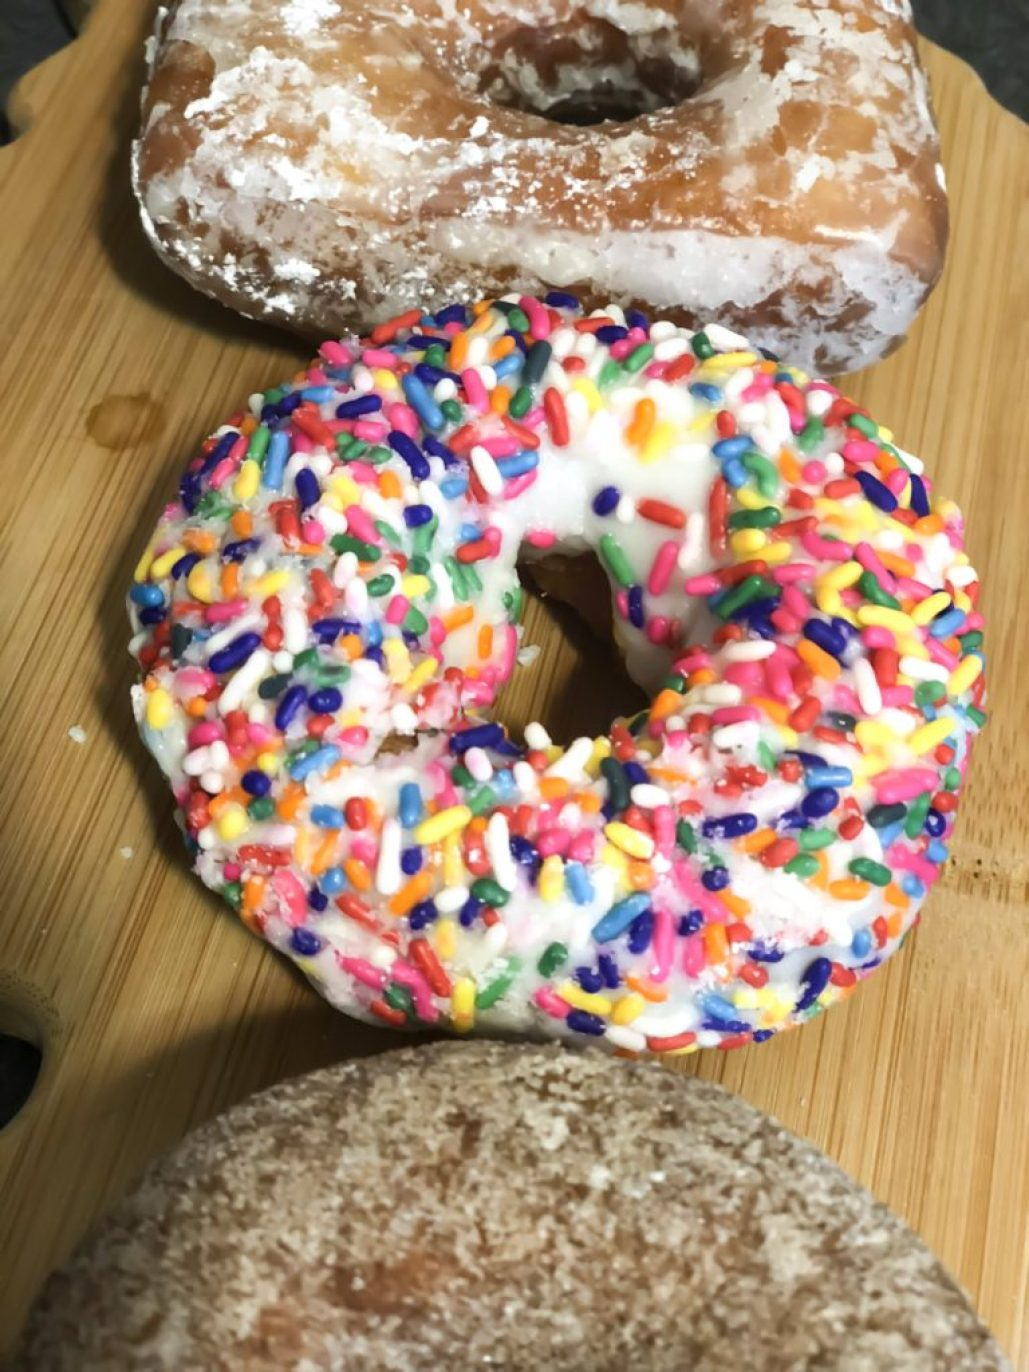 """Now, I know what you are thinking, """"Oh great! Another social media holiday."""" If you are thinking that, well, you are WRONG. National Doughnut Day wasn't a day created by social media with the sole purpose of posting a picture with a hashtag on Instagram in hopes of gaining numerous likes and followers. National Doughnut Day was a thing way before social media was in existence and even existed way before the internet was invented! It has origins dating back to 1938! #sharethelex #lexingtonky #doughnut #donut #nationaldonutday #nationaldoughnutday #eatkentucky #tasteky"""